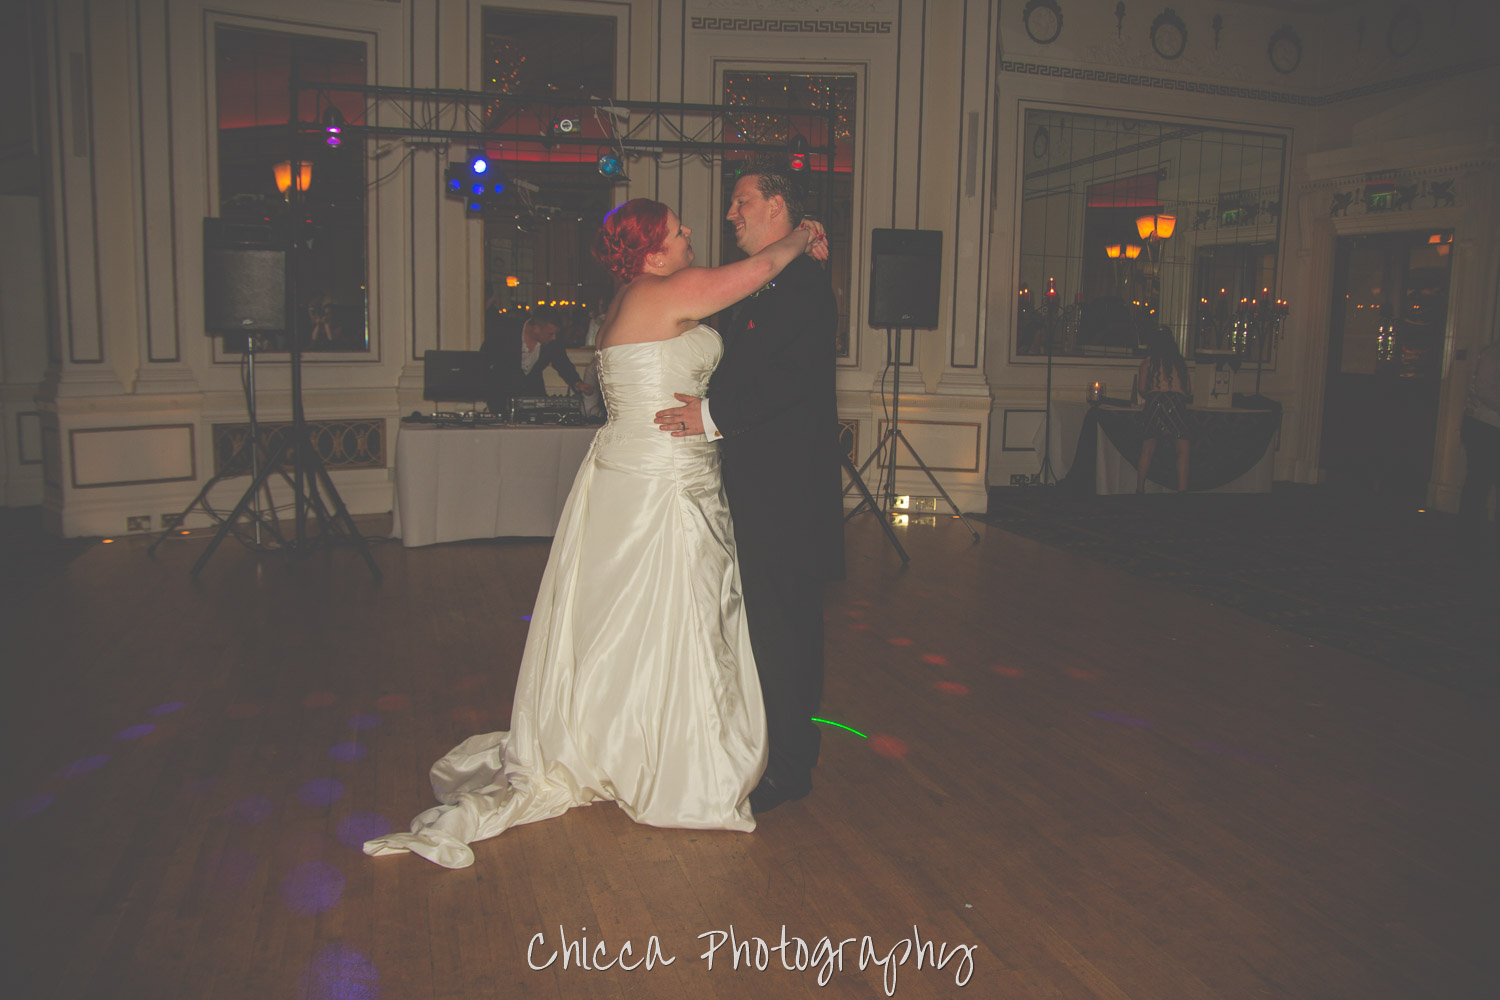 midland-hotel-bradford-wedding-photography-chicca-32.jpg